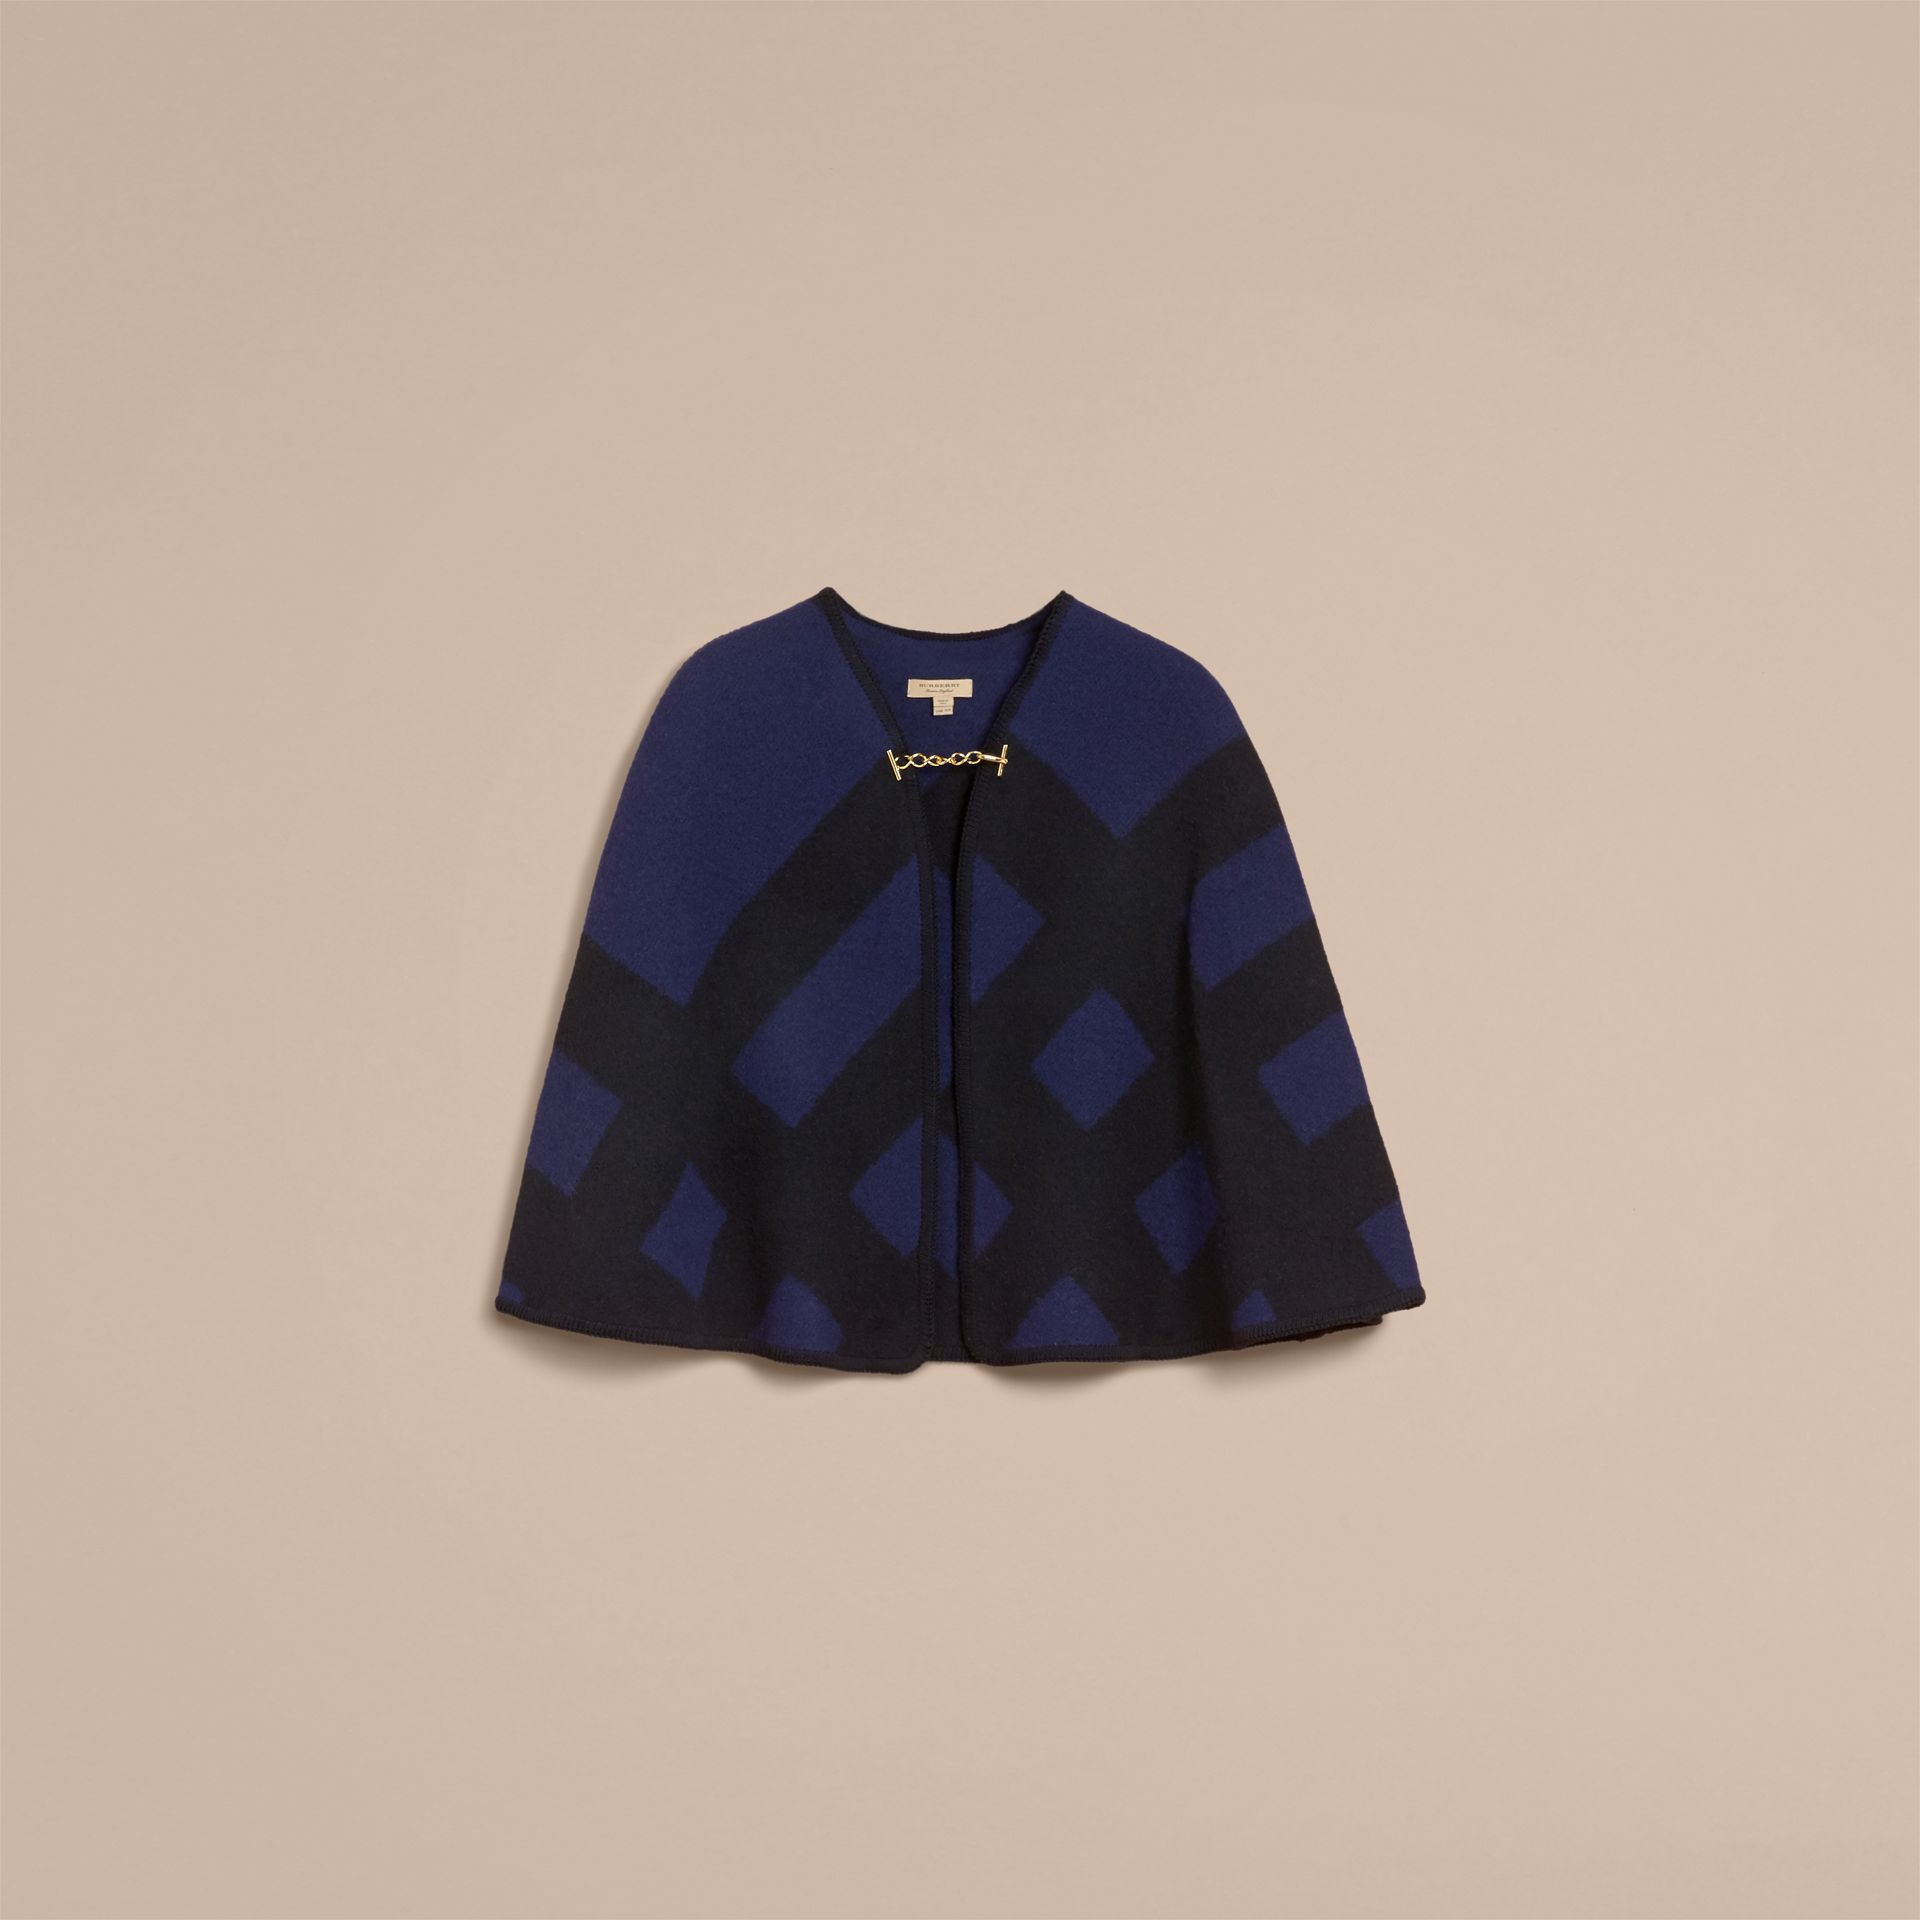 Check Wool Cashmere Blanket Cape in Navy - Women | Burberry - gallery image 4